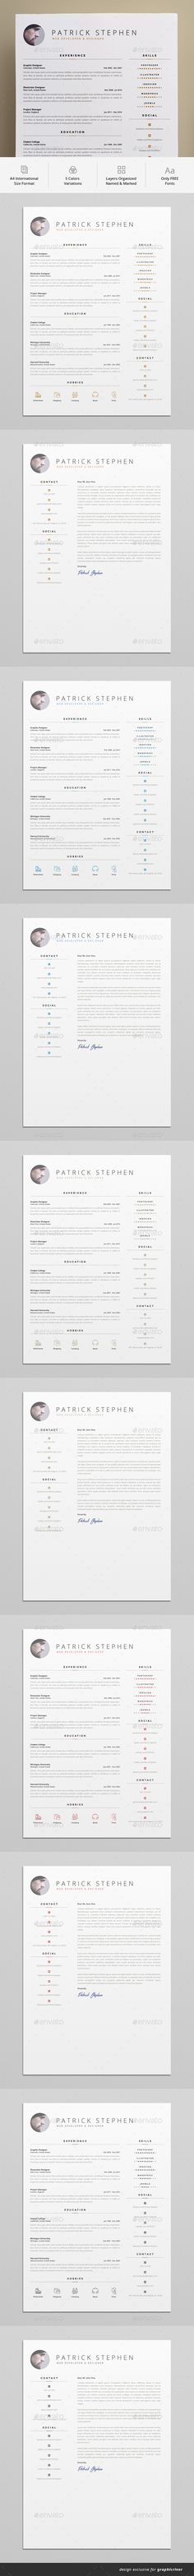 Resume A4 Template PSD - 5 Color Variations, 19 Hobbies icons + 14 Social icons